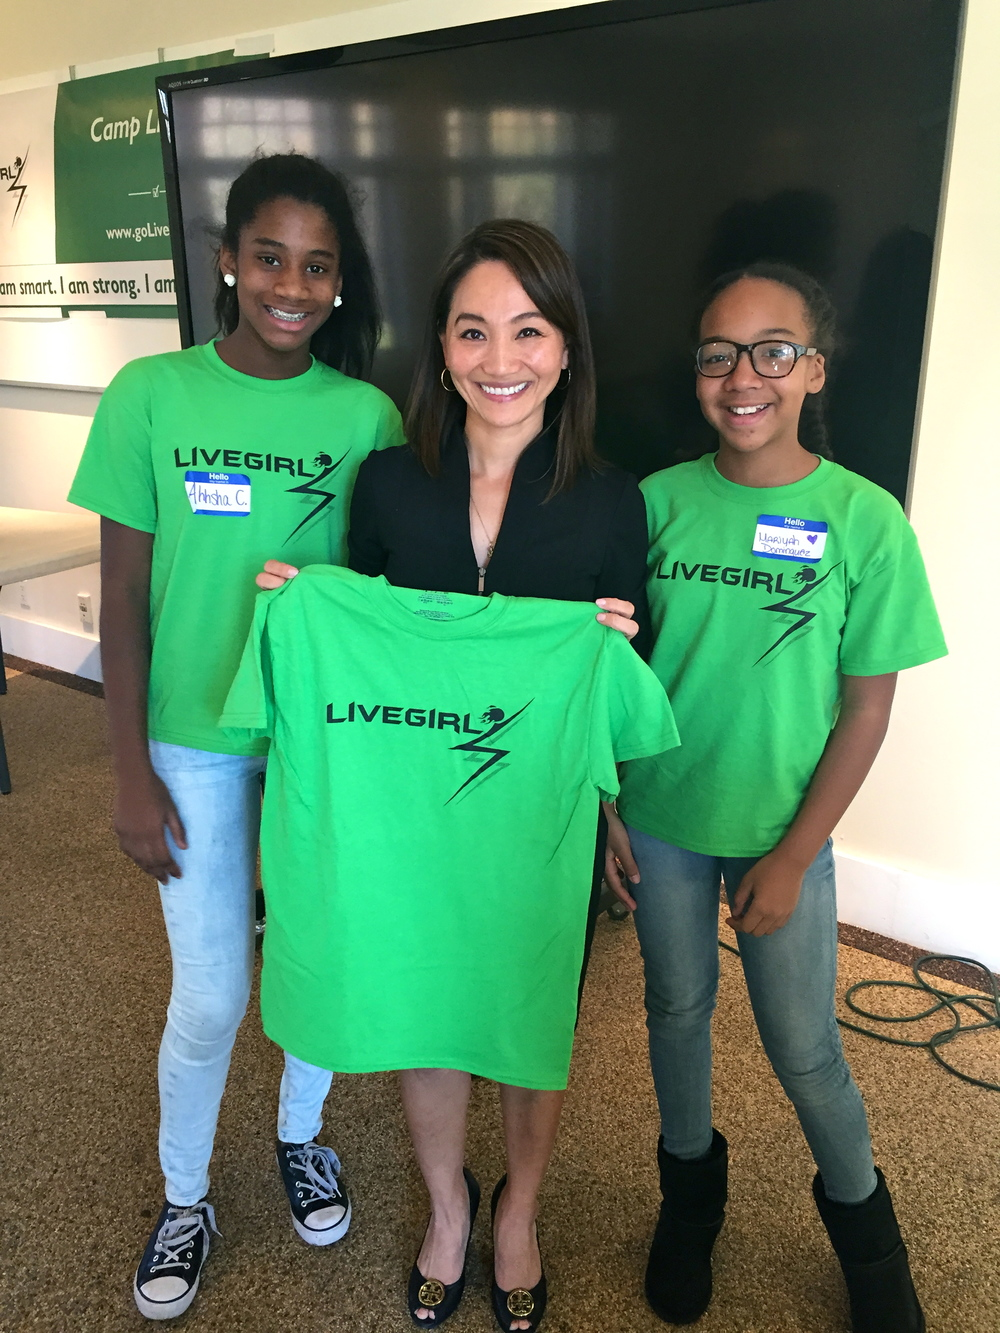 A variety of executive women serve as LiveGirl mentors. Pictured here is Deloitte Partner Elle D'Andrea (middle).